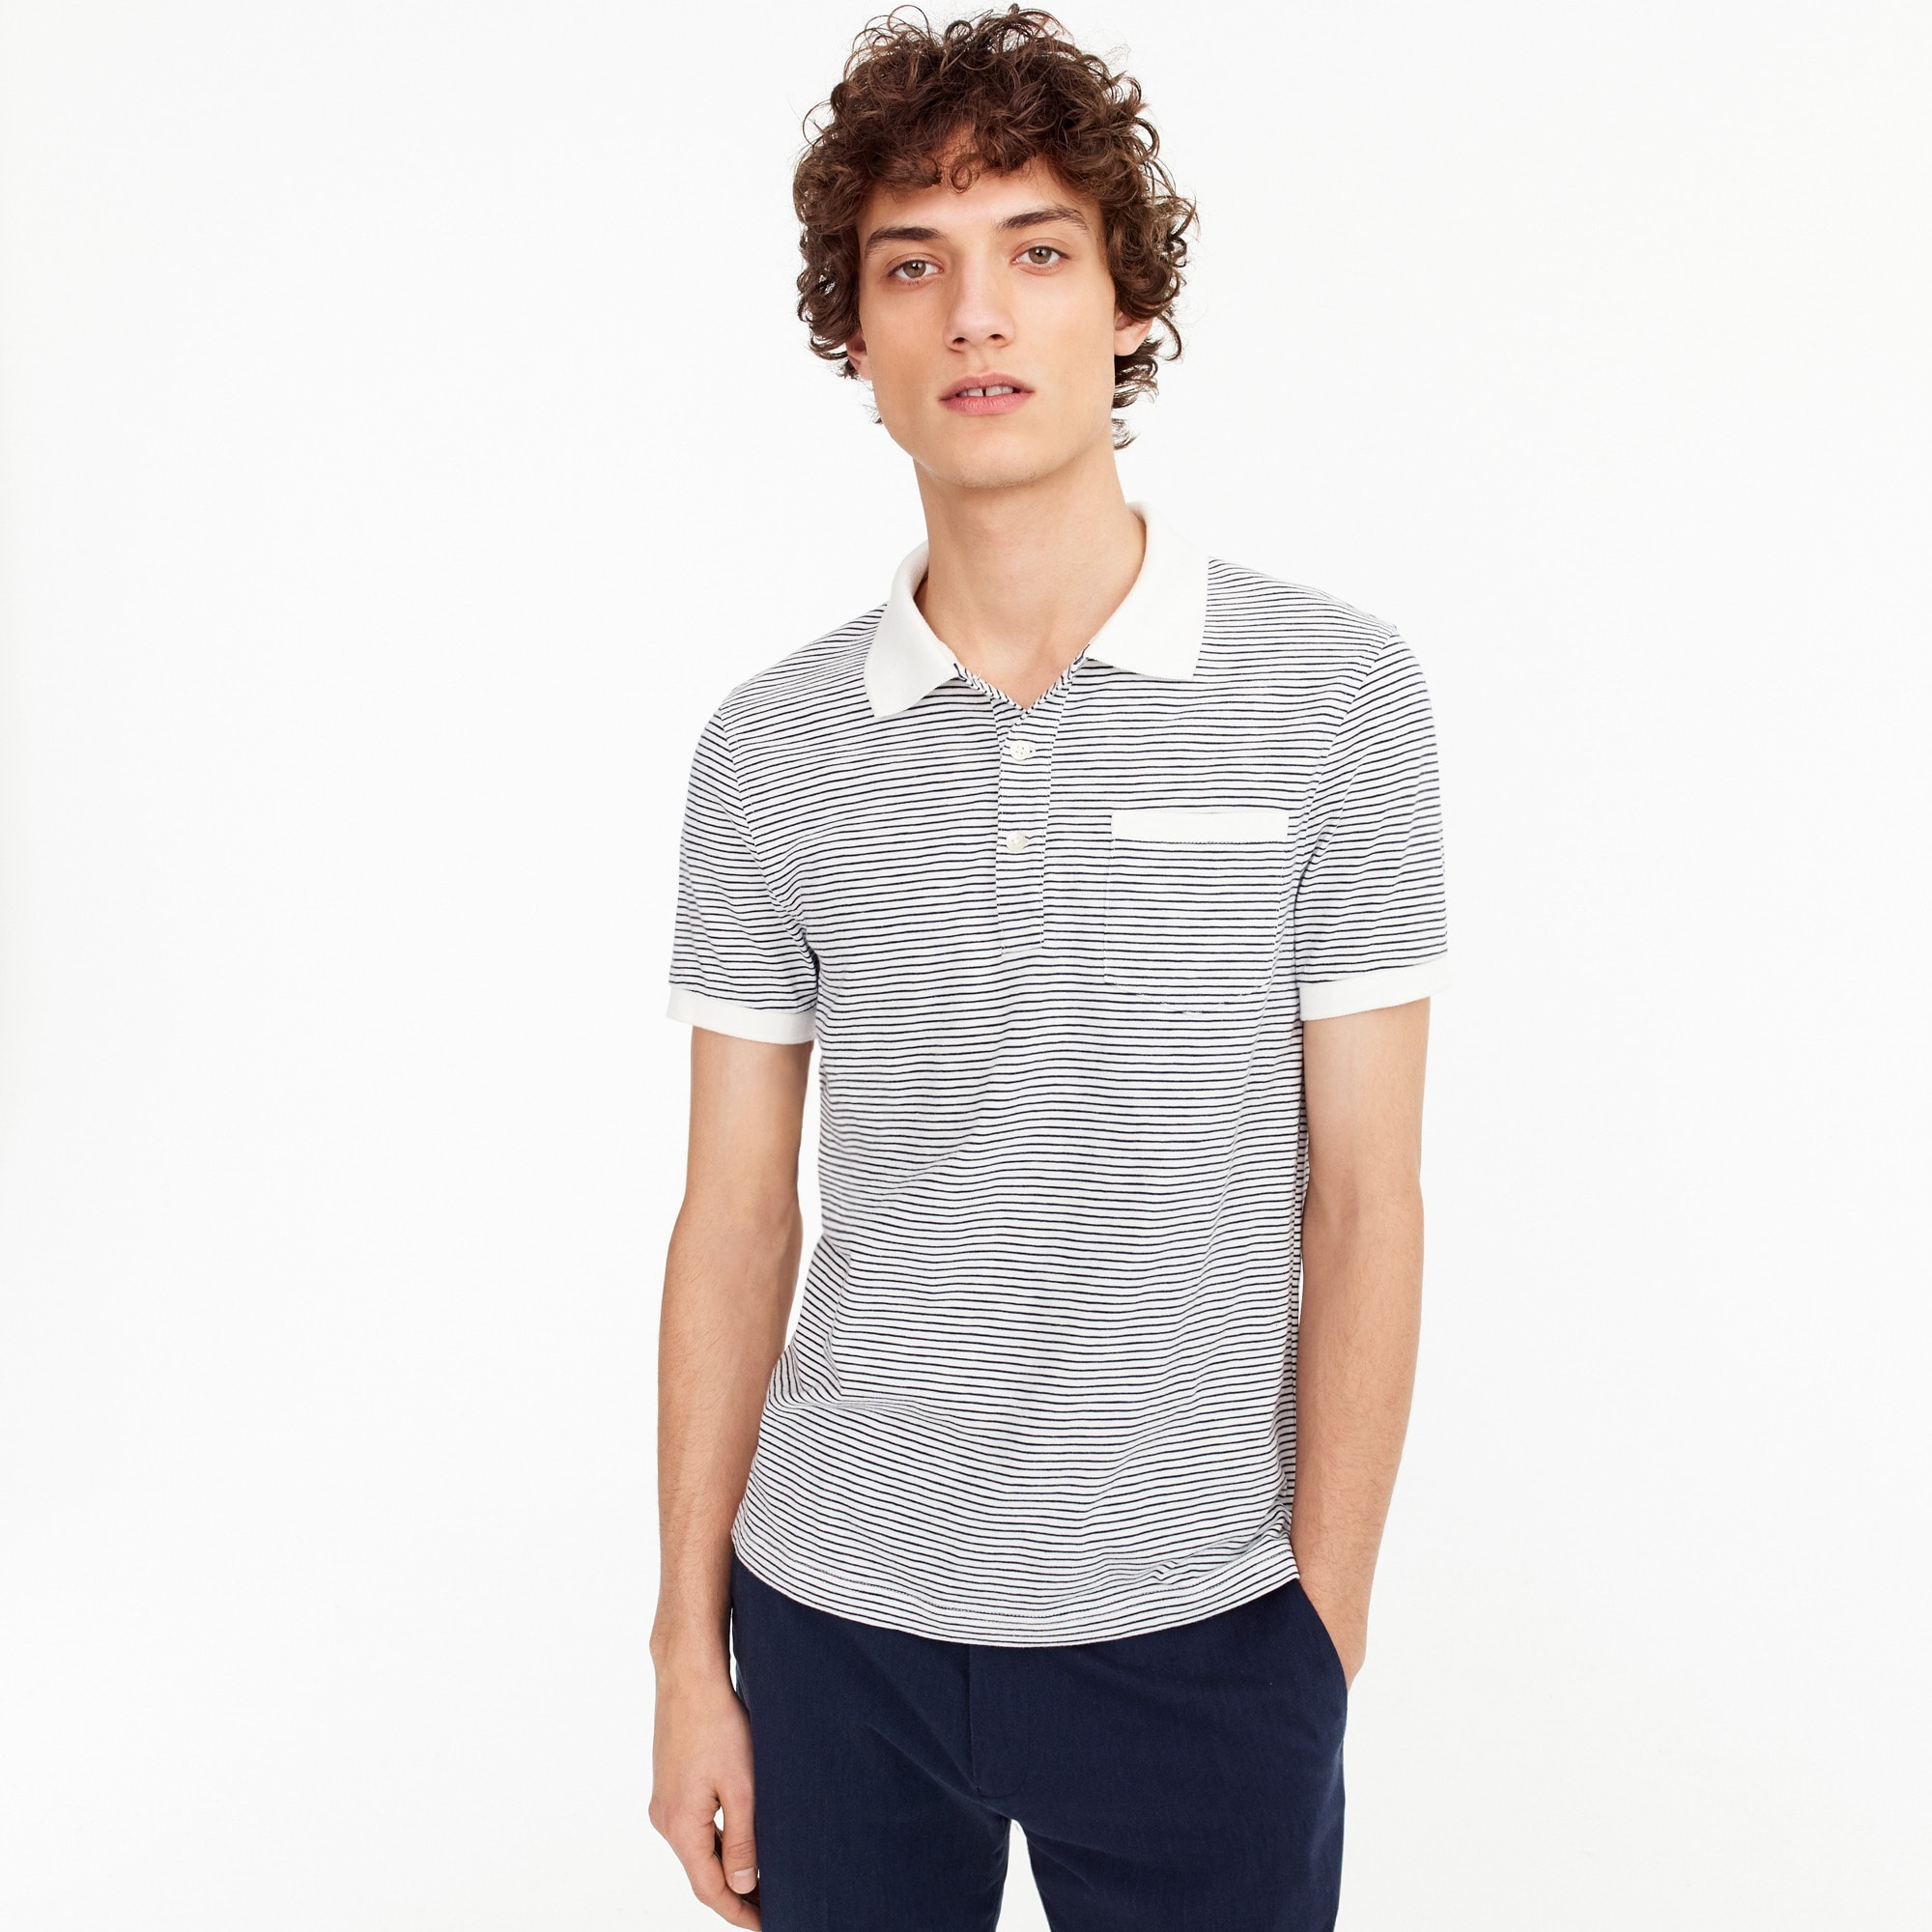 men's slub cotton jersey polo in microstripe - men's knits